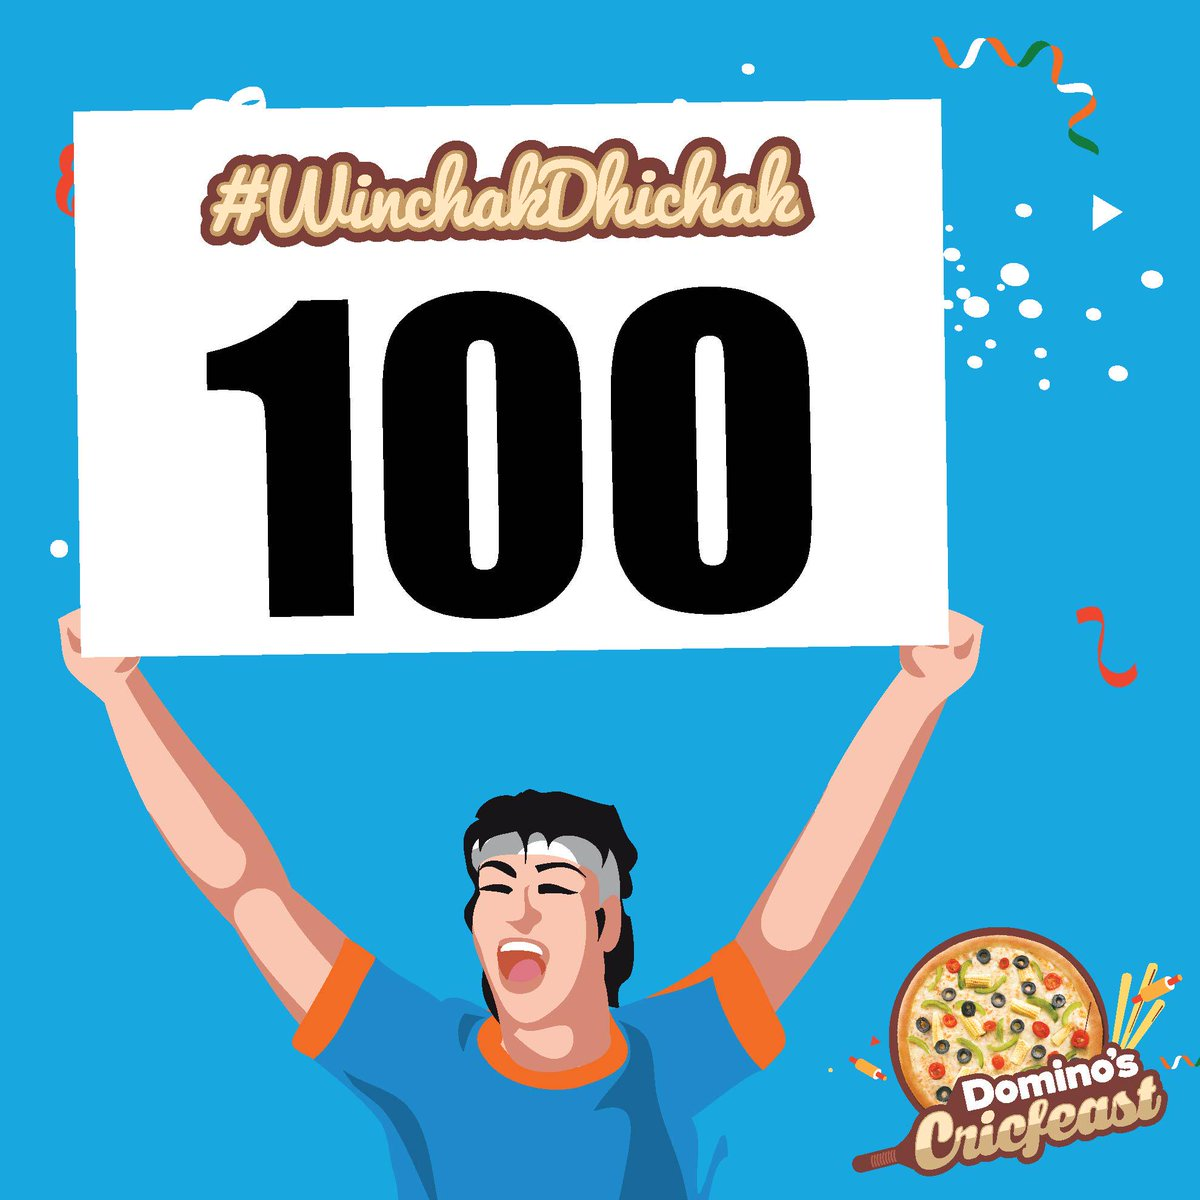 #WinchakDhichak #contest Q1. Which batsman hit a century against SA this Sunday? http://t.co/NGyAJIyxKD